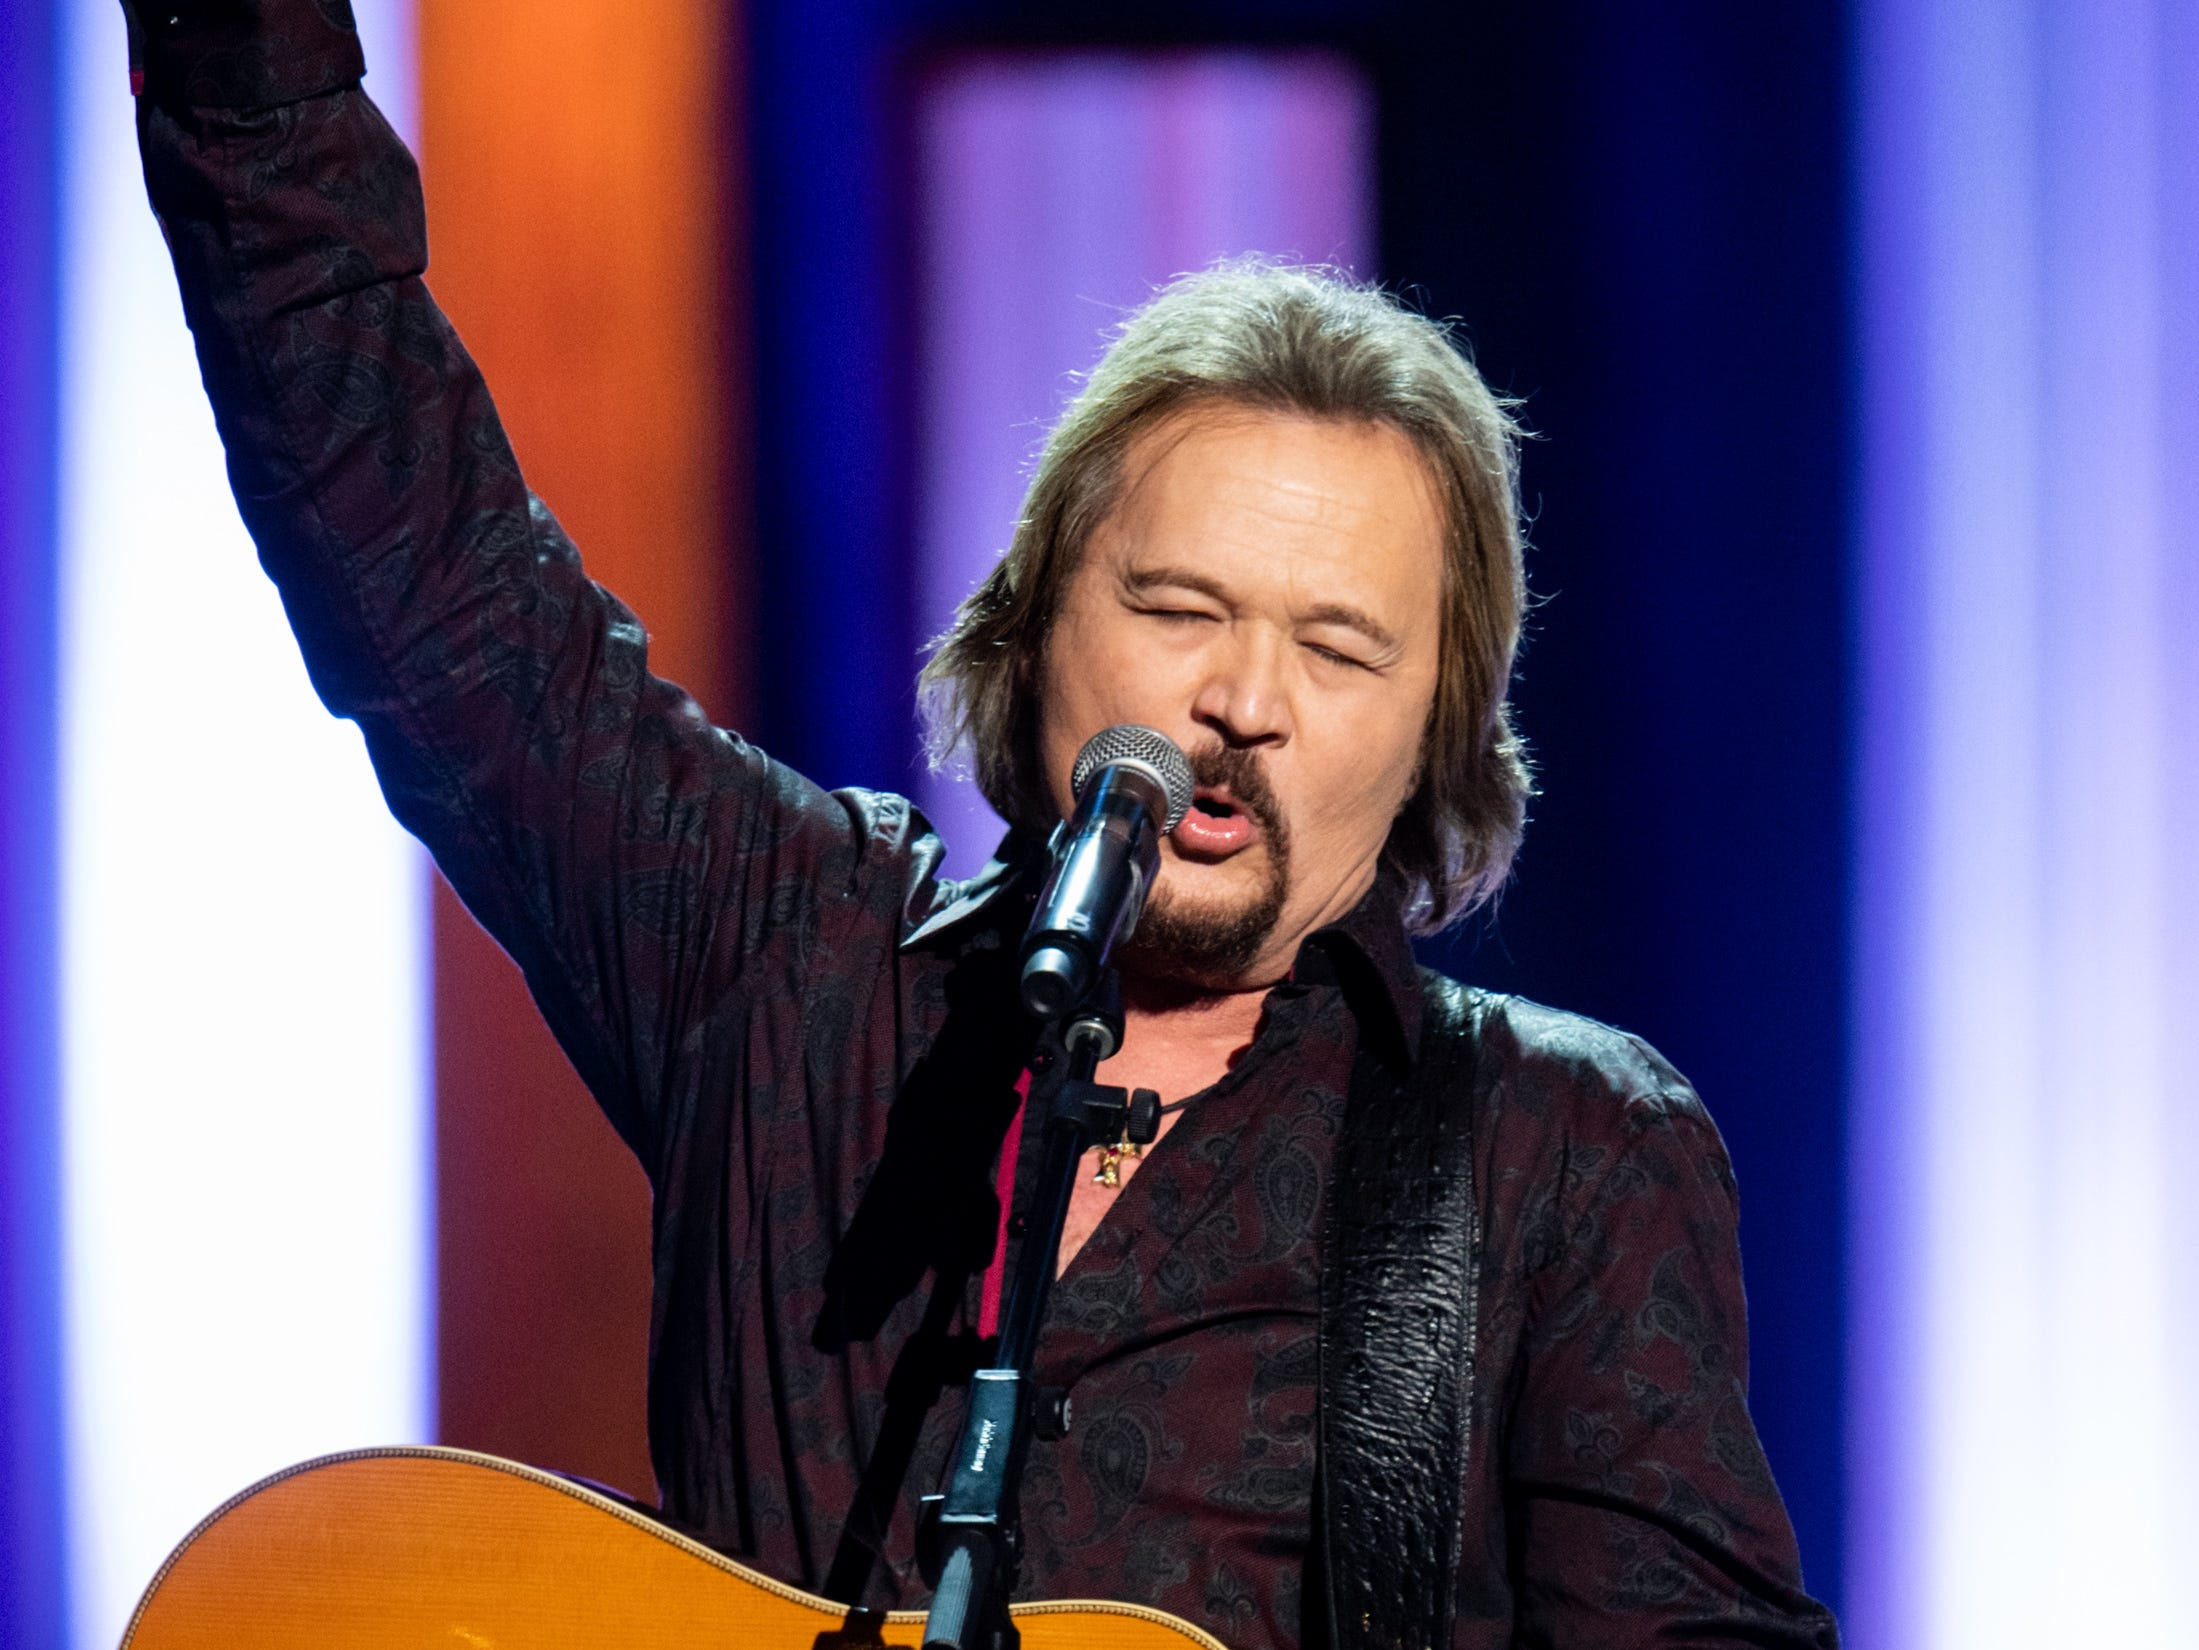 Travis Tritt performs during the An Opry Salute to Ray Charles concert at The Grand Ole Opry in Nashville, Tenn., Monday, Oct. 8, 2018.